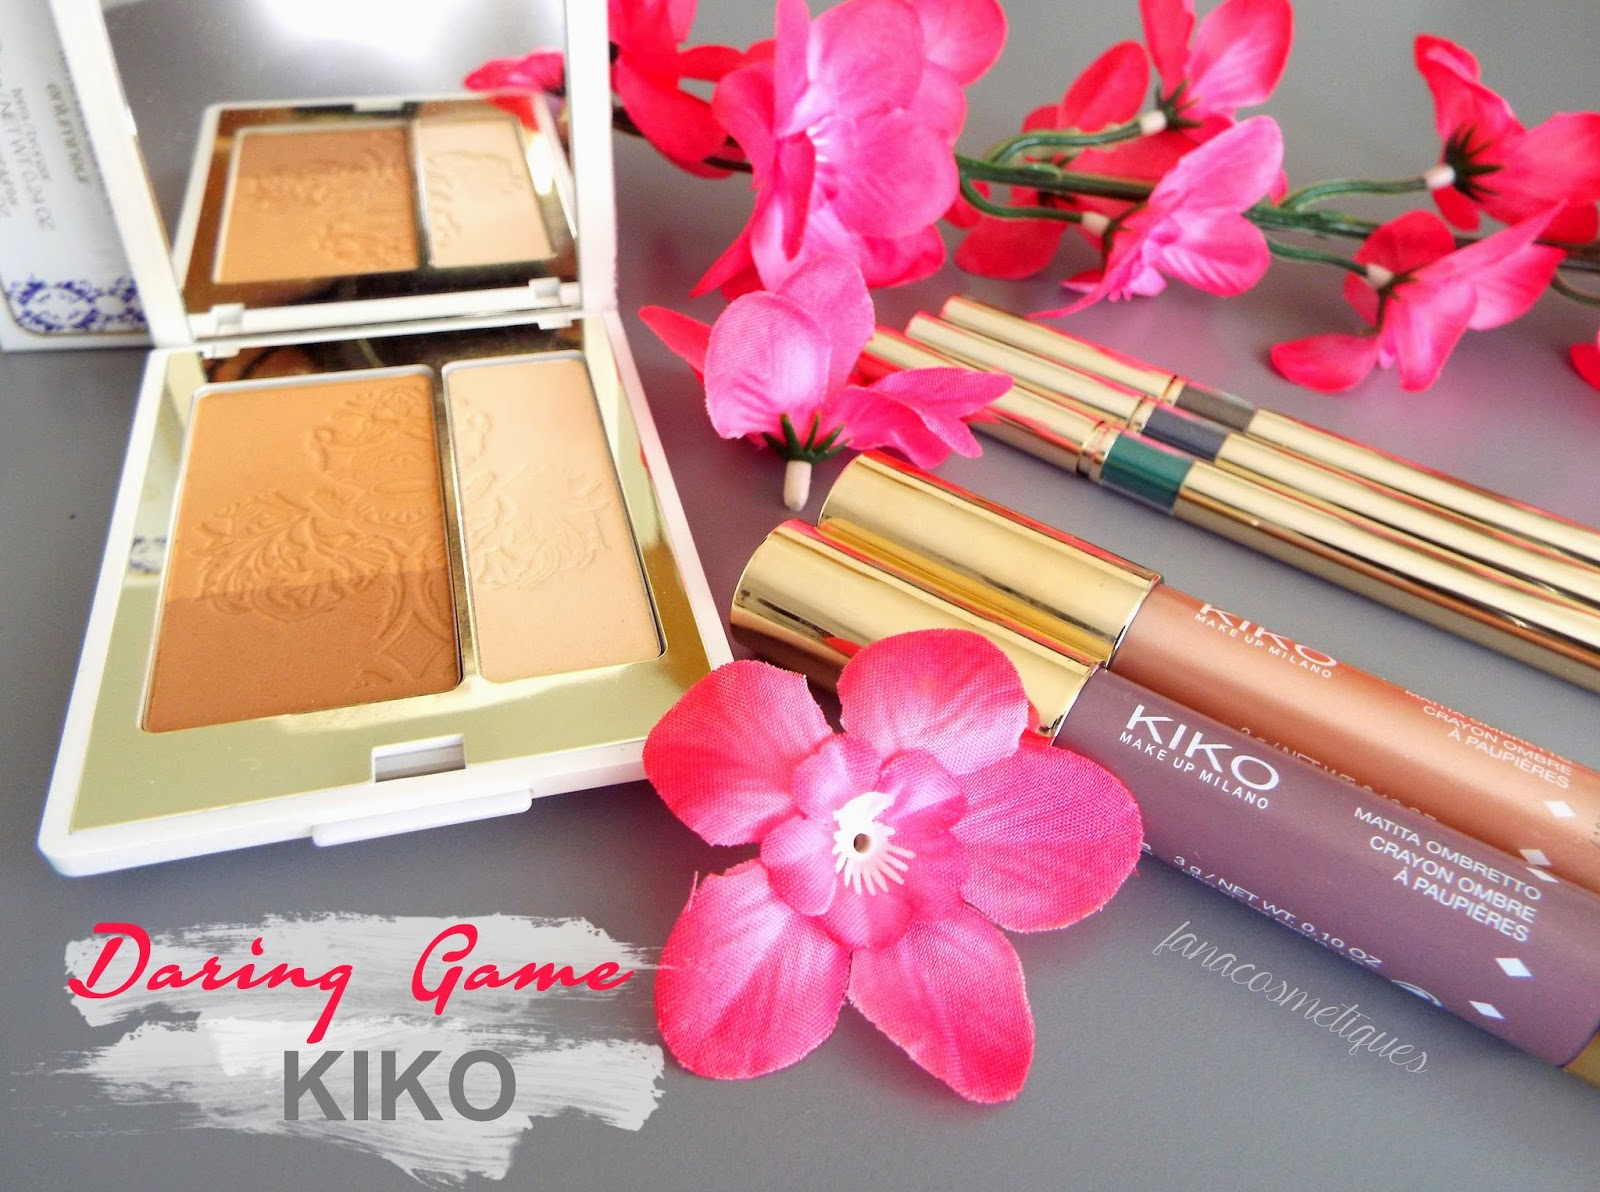 Jeu de séduction avec la collection Daring Game de KIKO